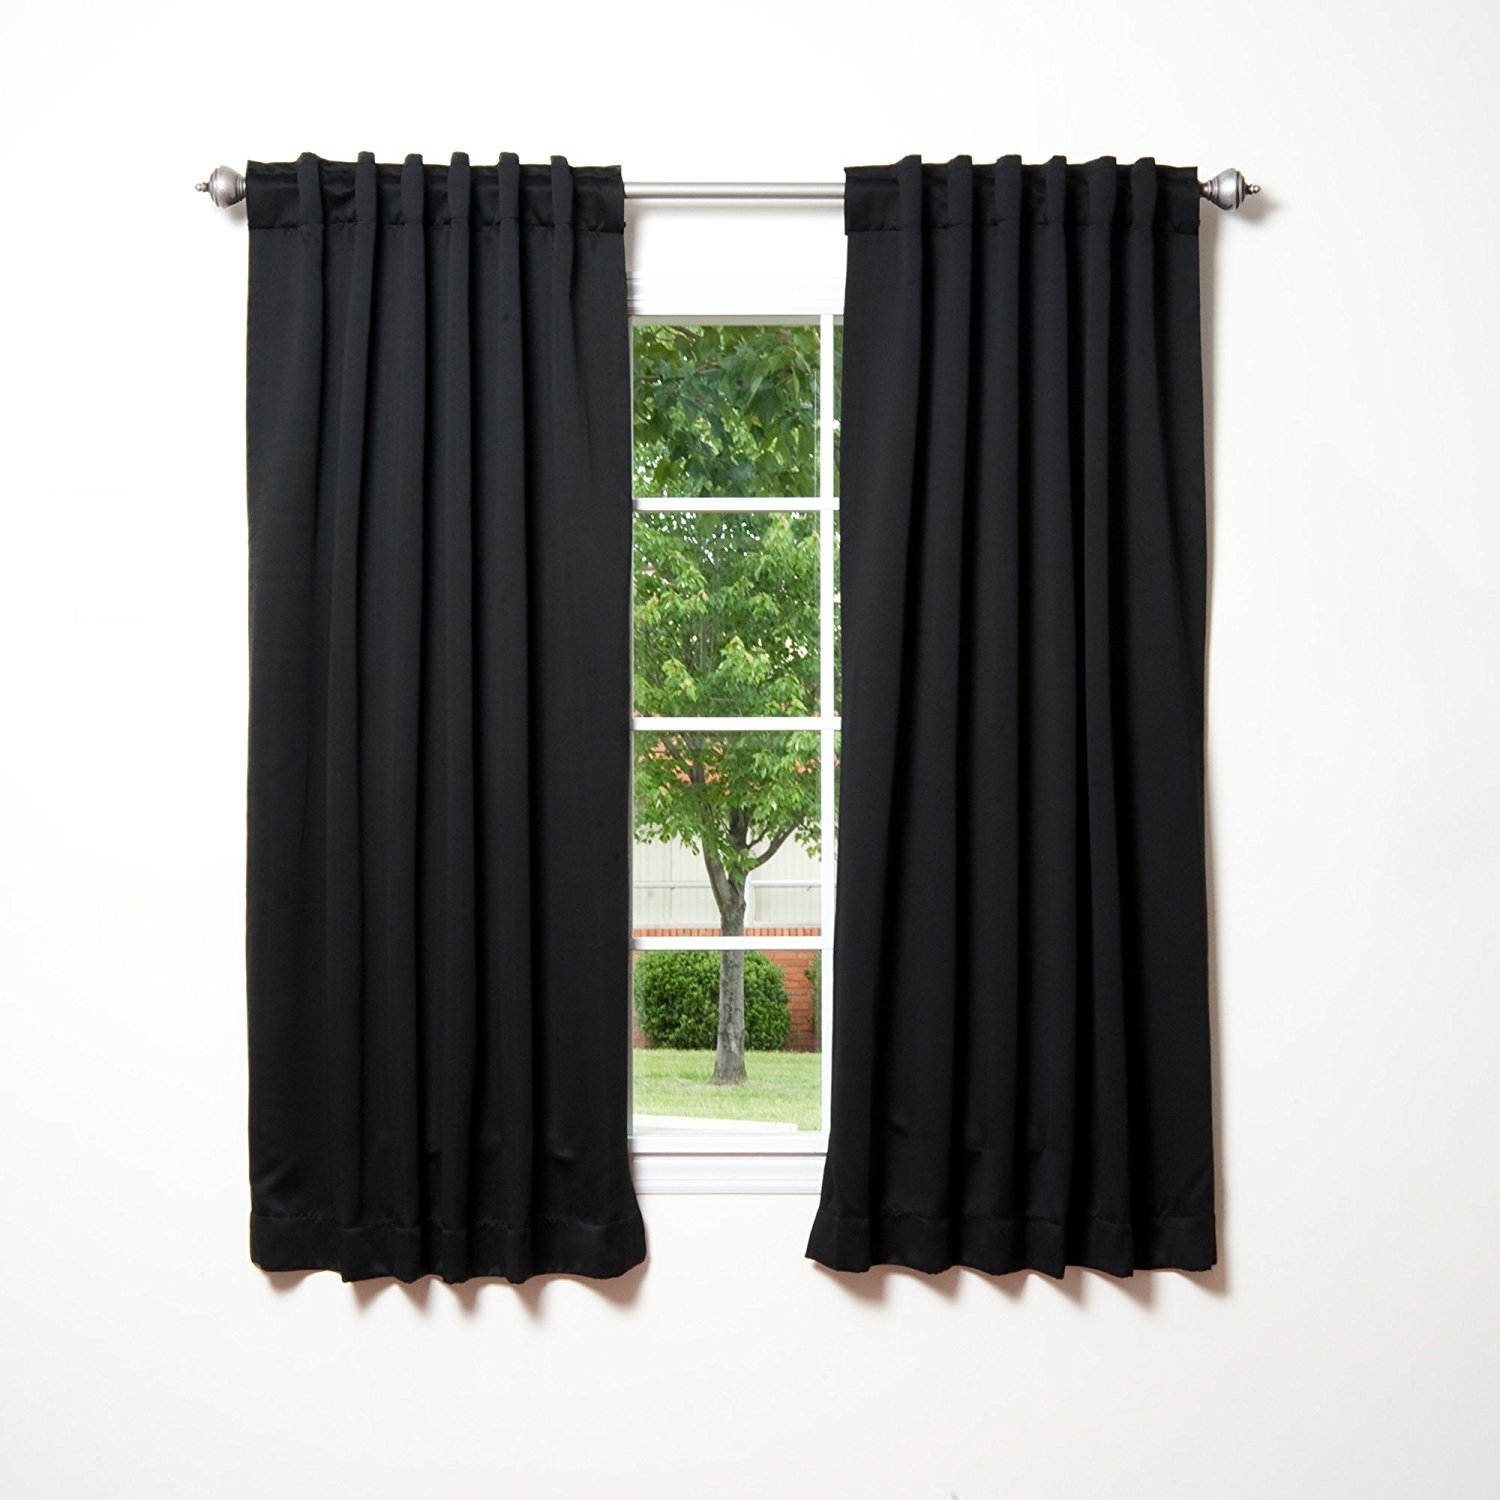 Amazon Best Home Fashion Thermal Insulated Blackout Curtains With Thermal And Blackout Curtains (Image 2 of 15)